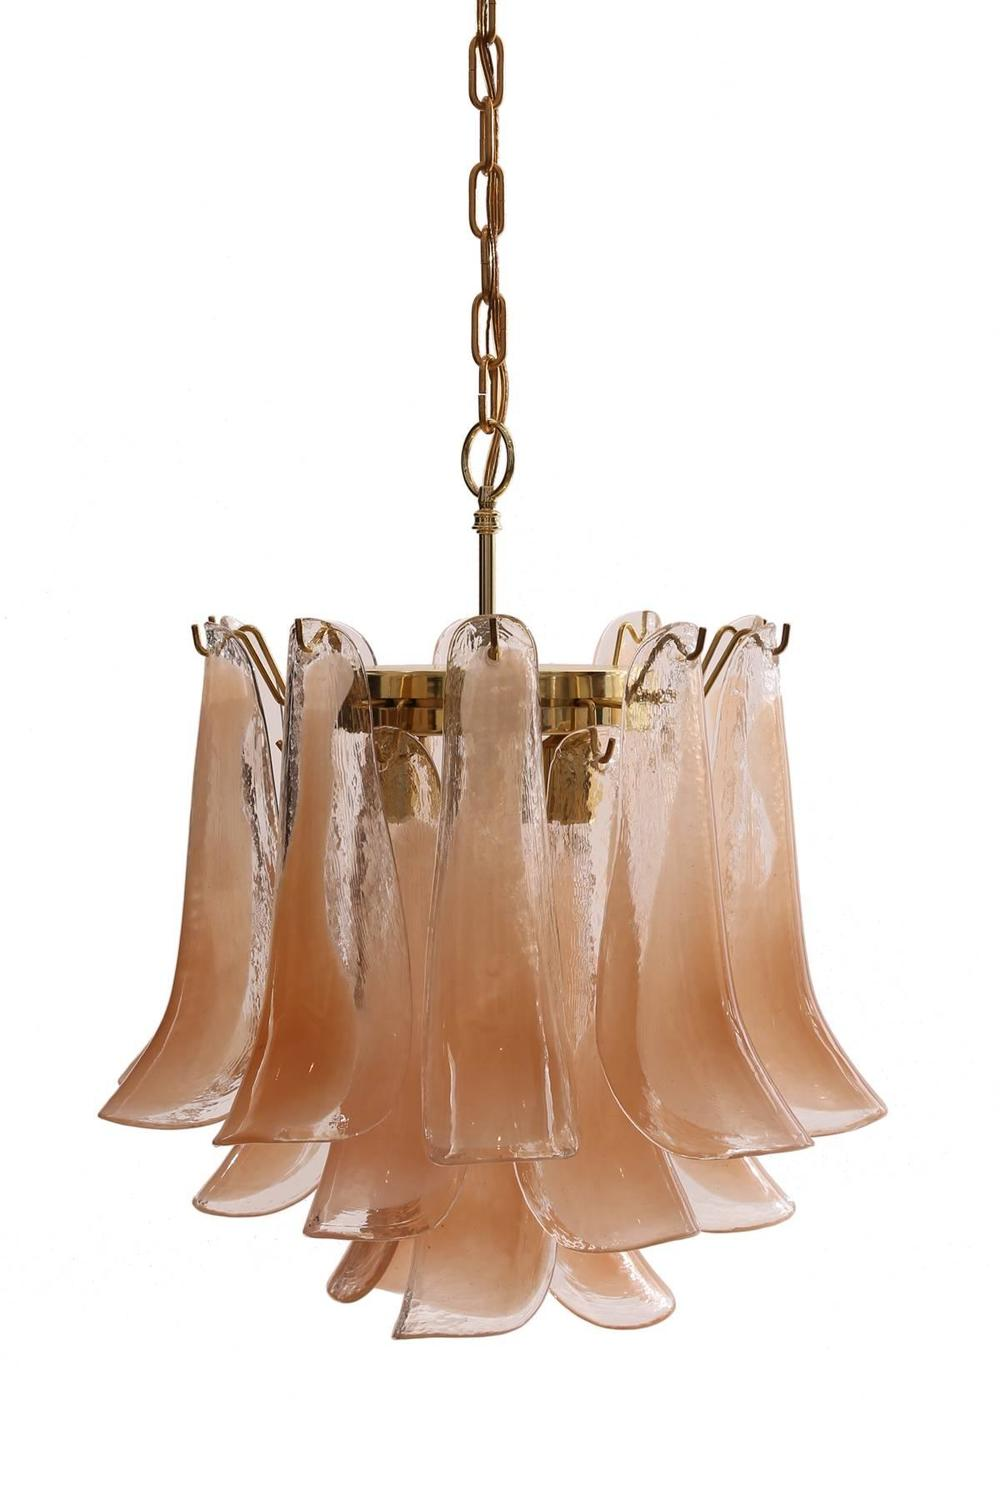 Three Tiered Murano Glass Chandelier By Mazzega For Sale